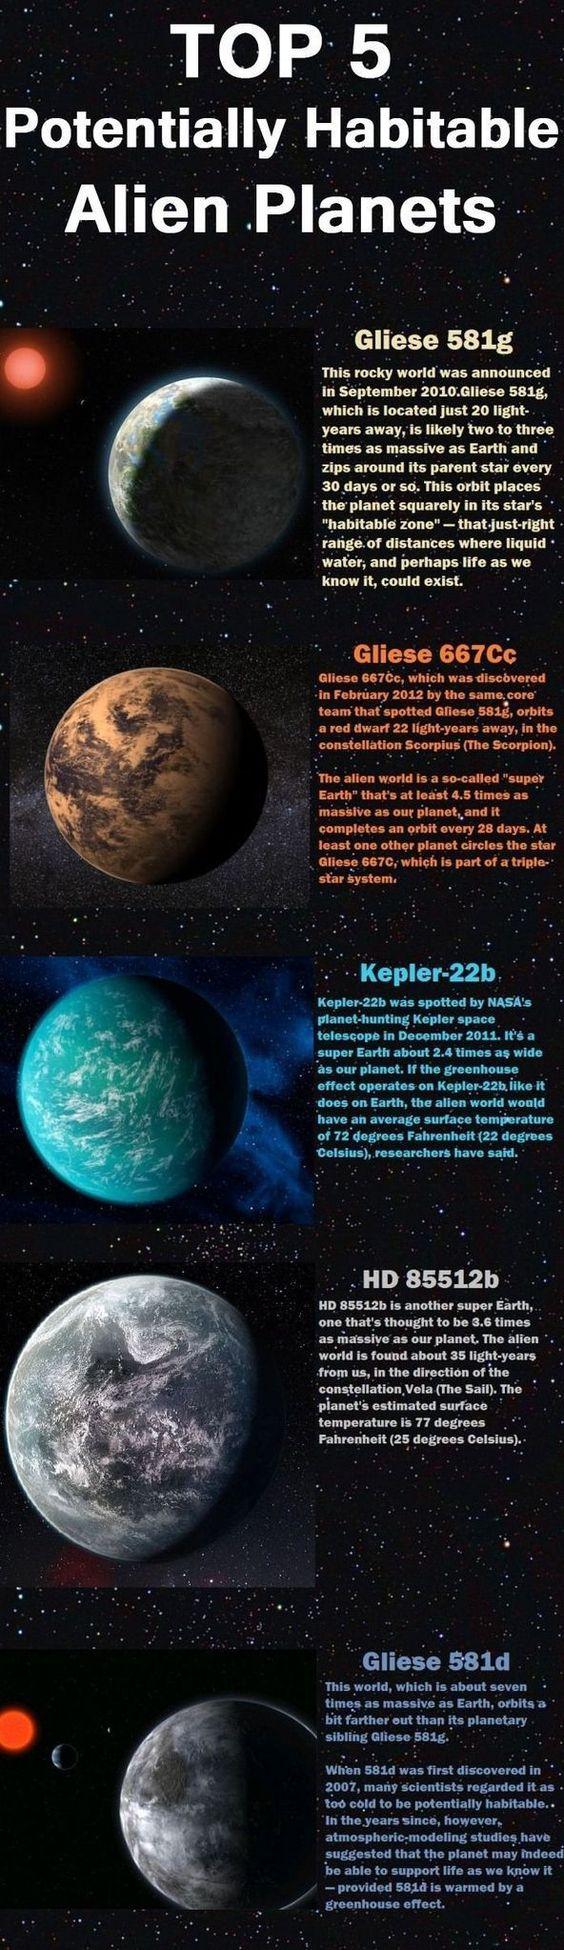 Top 5 potentially habitable exoplanets: